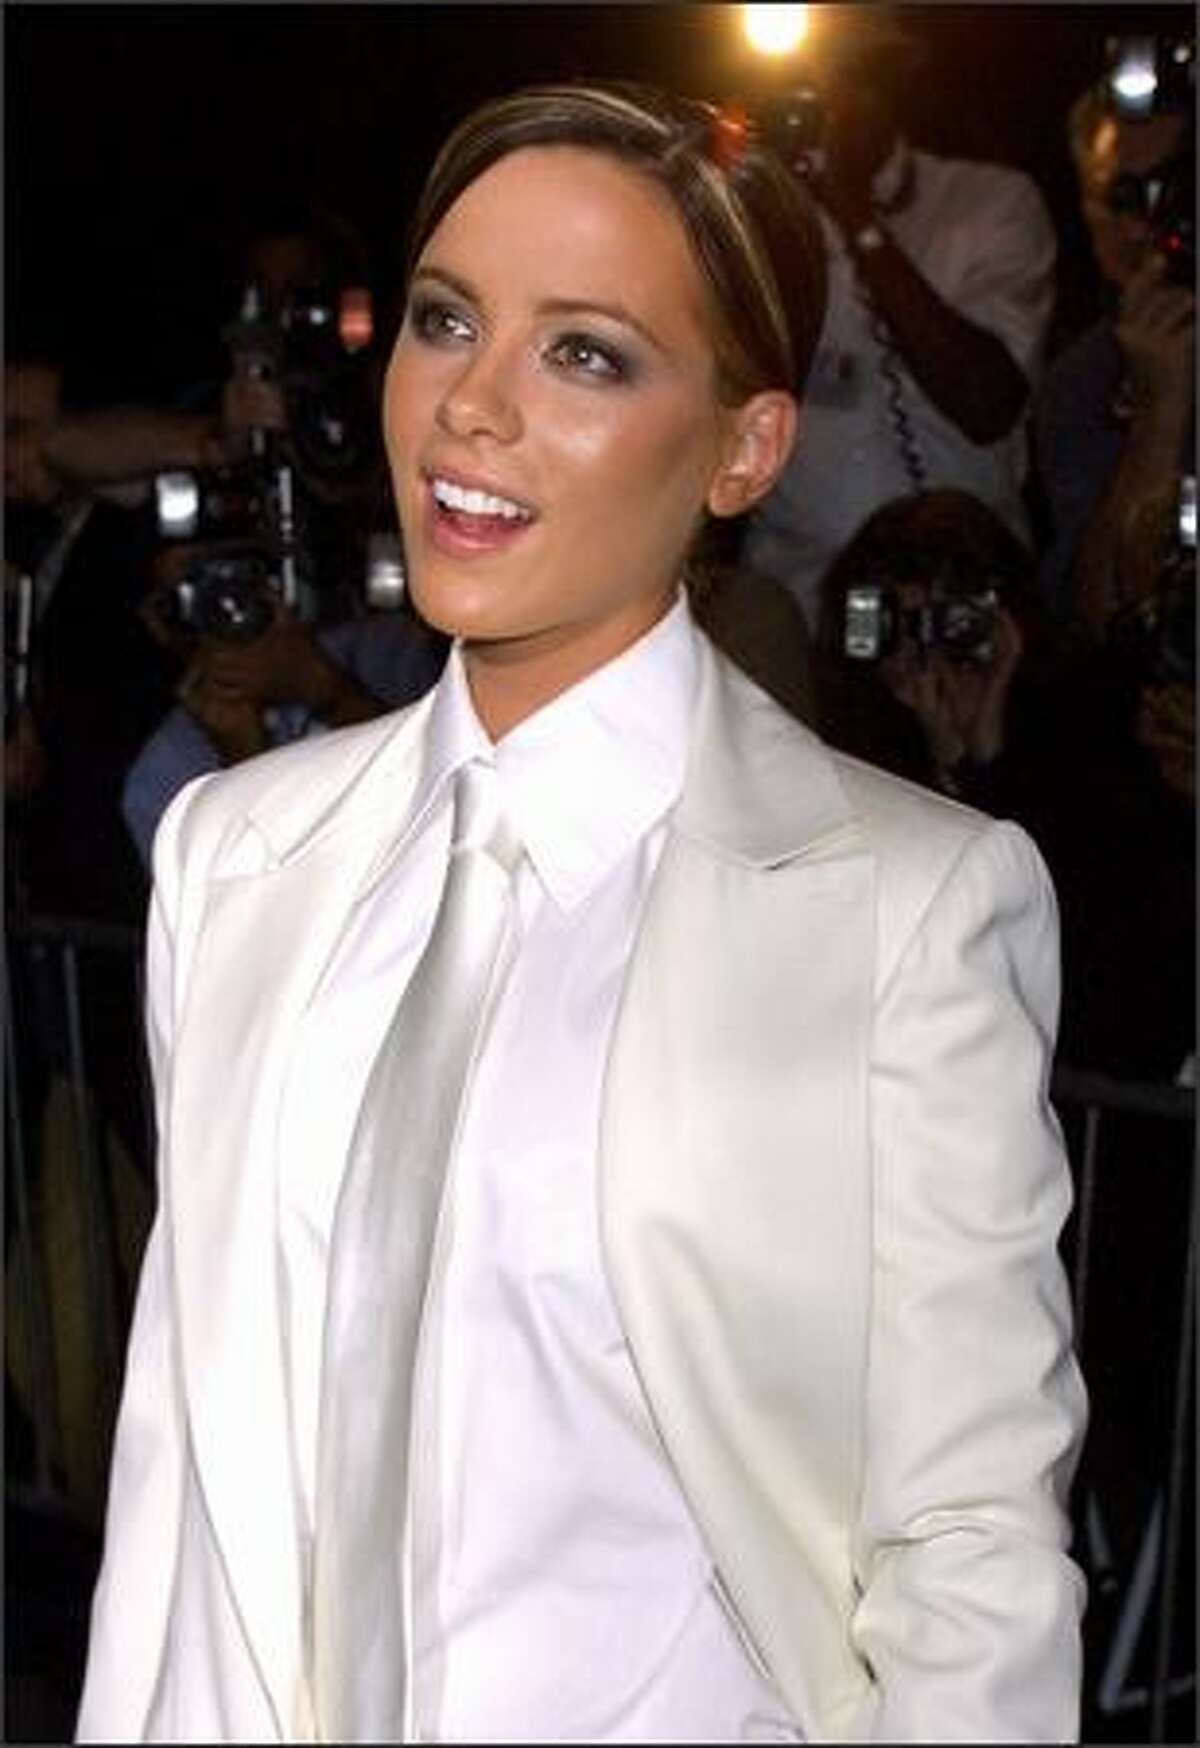 """Kate Beckinsale attends the premiere of the film """"Serendipity"""" Oct. 3, 2001 at the Ziegfeld Theatre in New York."""